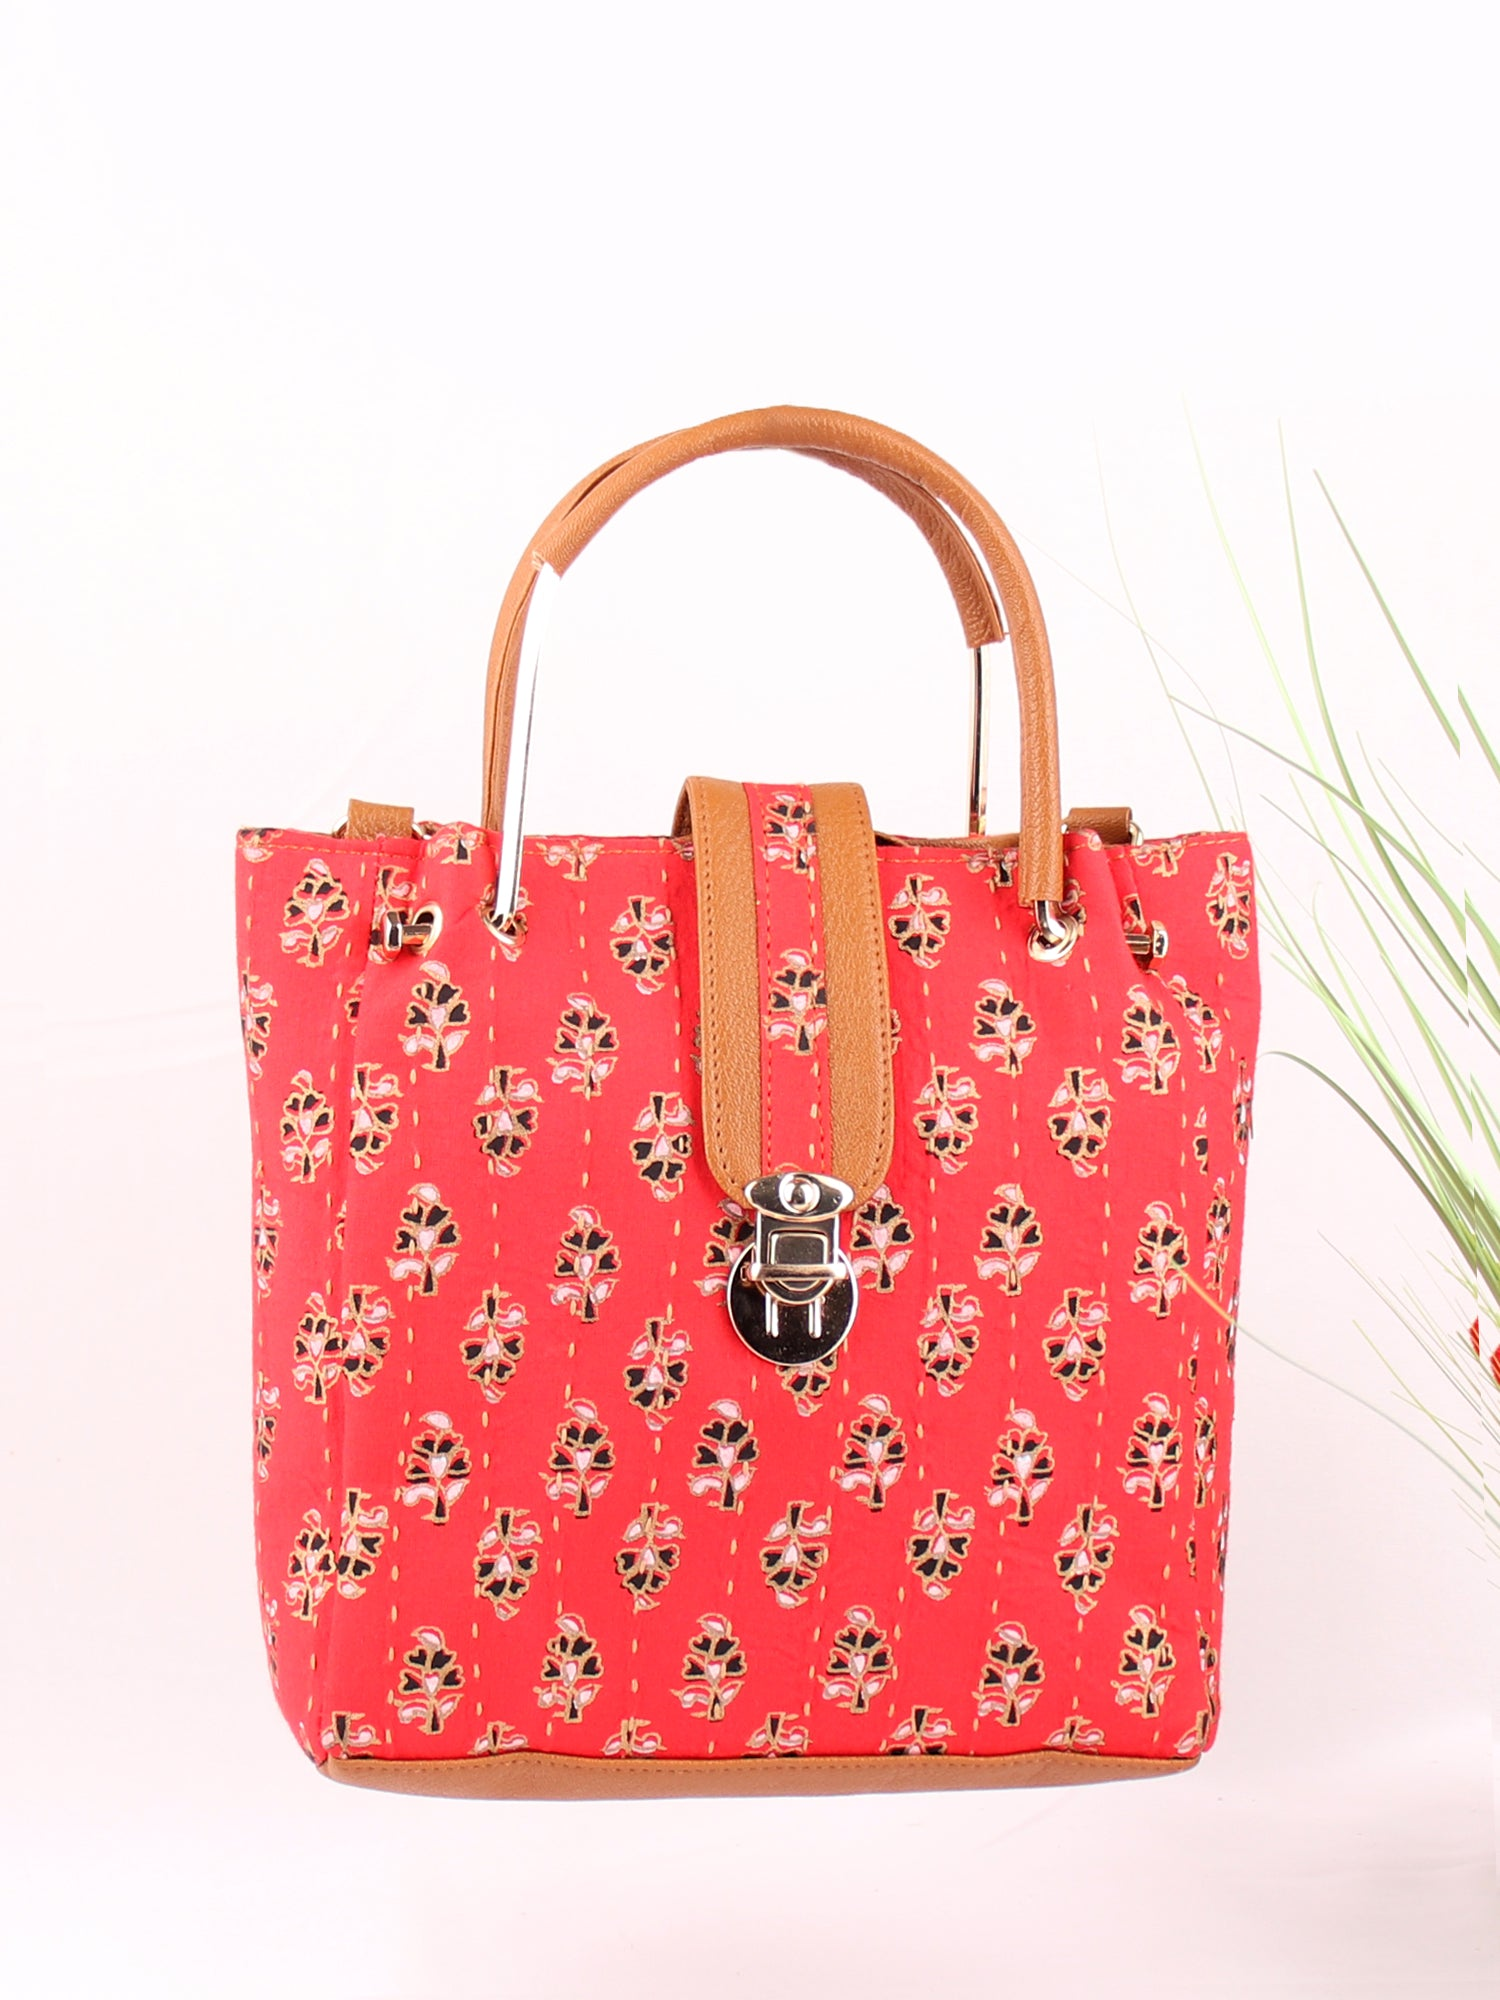 VERMILLION HANDBAG WITH ADJUSTABLE STRAP